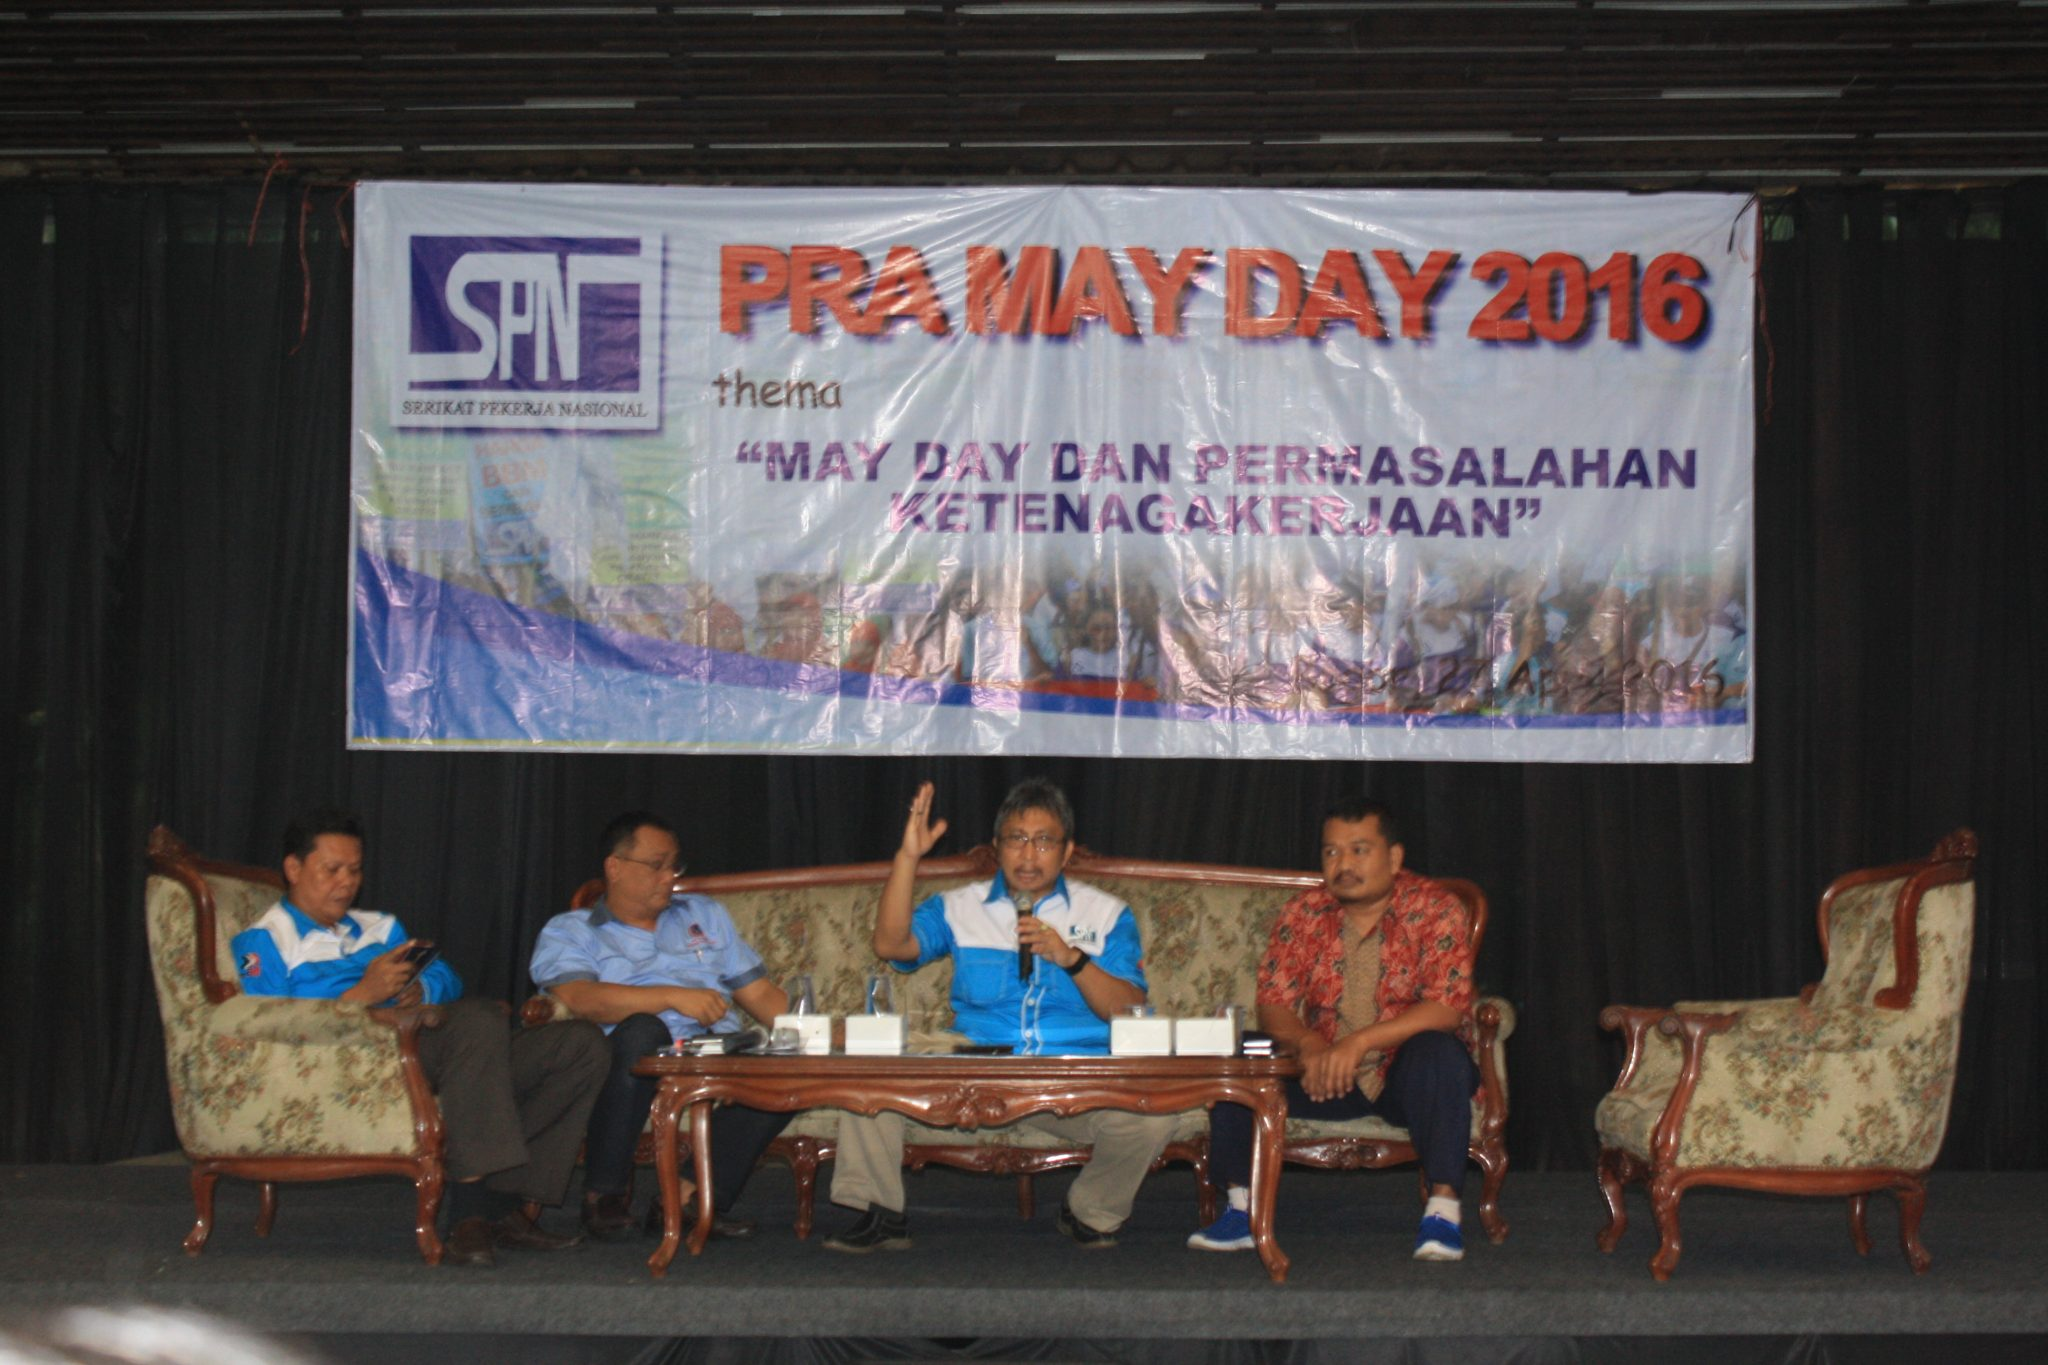 DIALOG PUBLIK PRA MAY DAY